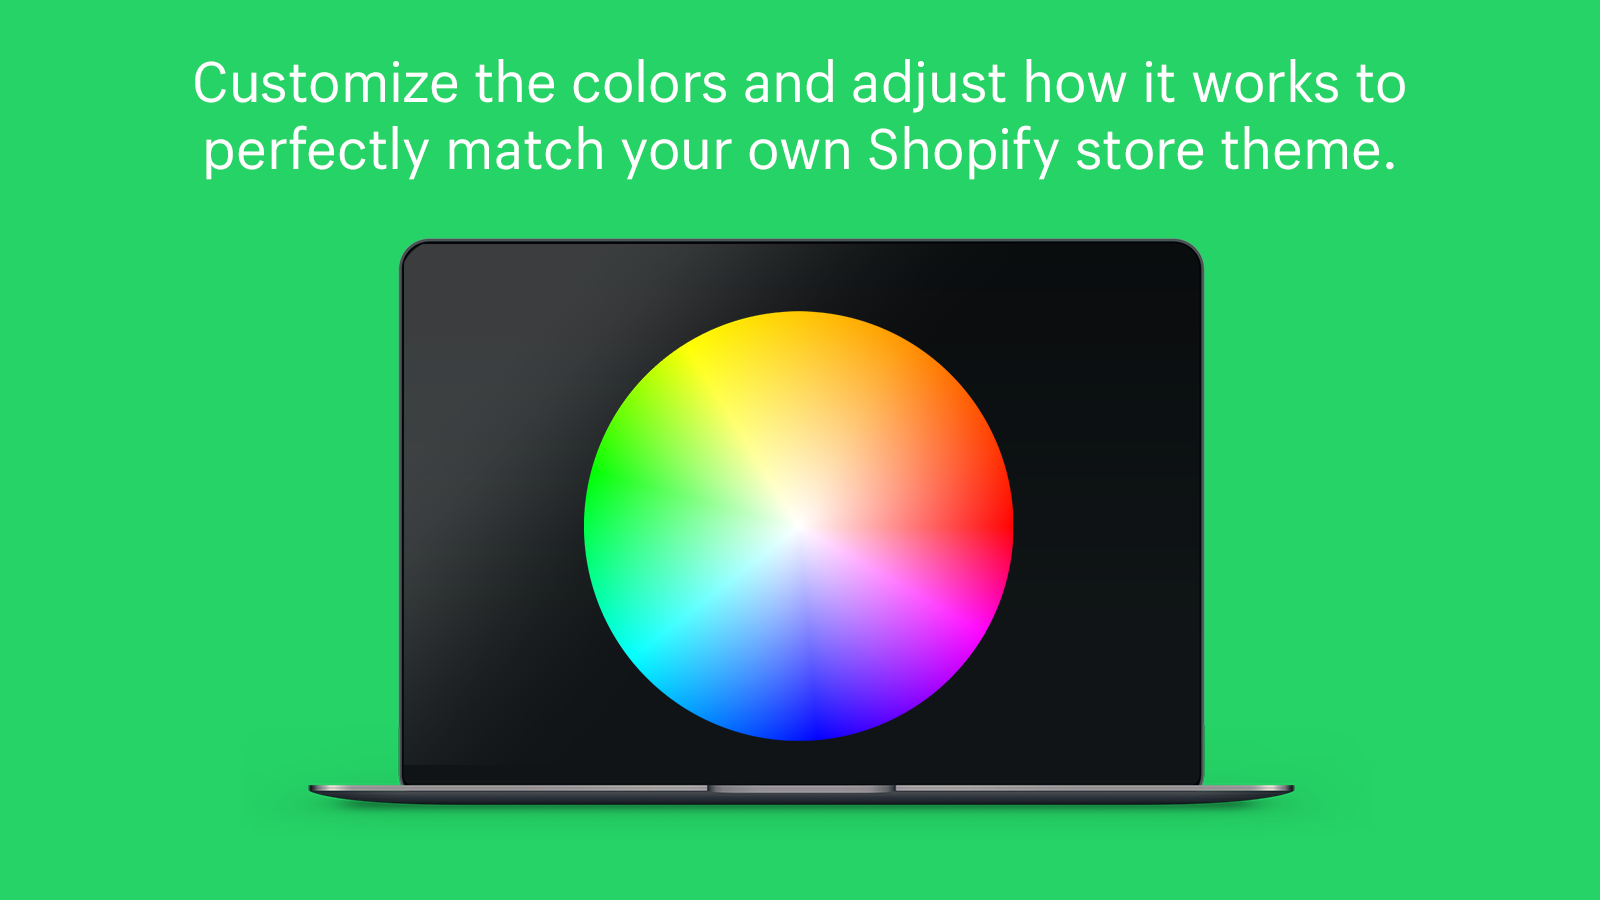 Customize the colors to perfectly match your Shopify store theme